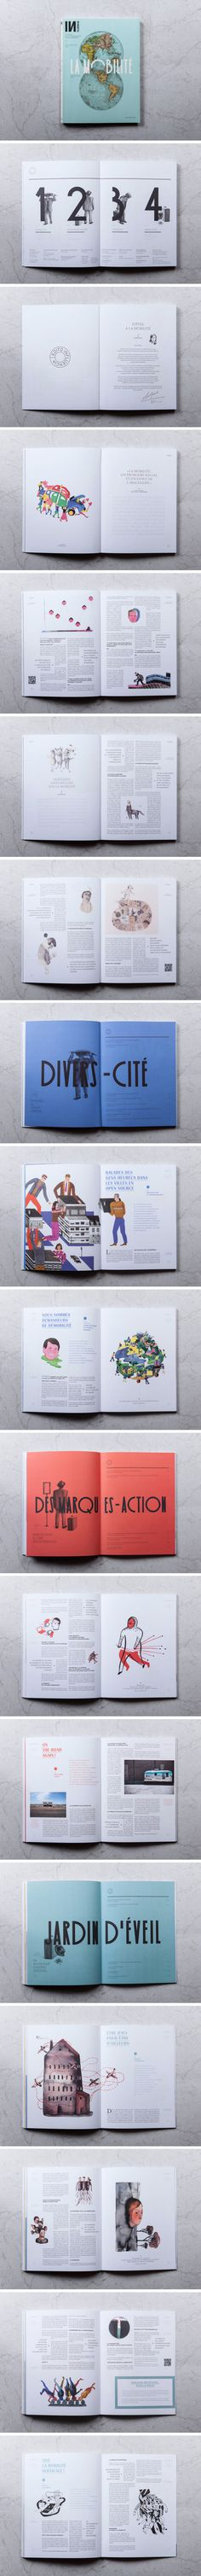 INFLUENCIA N°3 - LA MOBILITÉ | so interesting and beautiful; the illustrations are lovely, and all the white space is nice